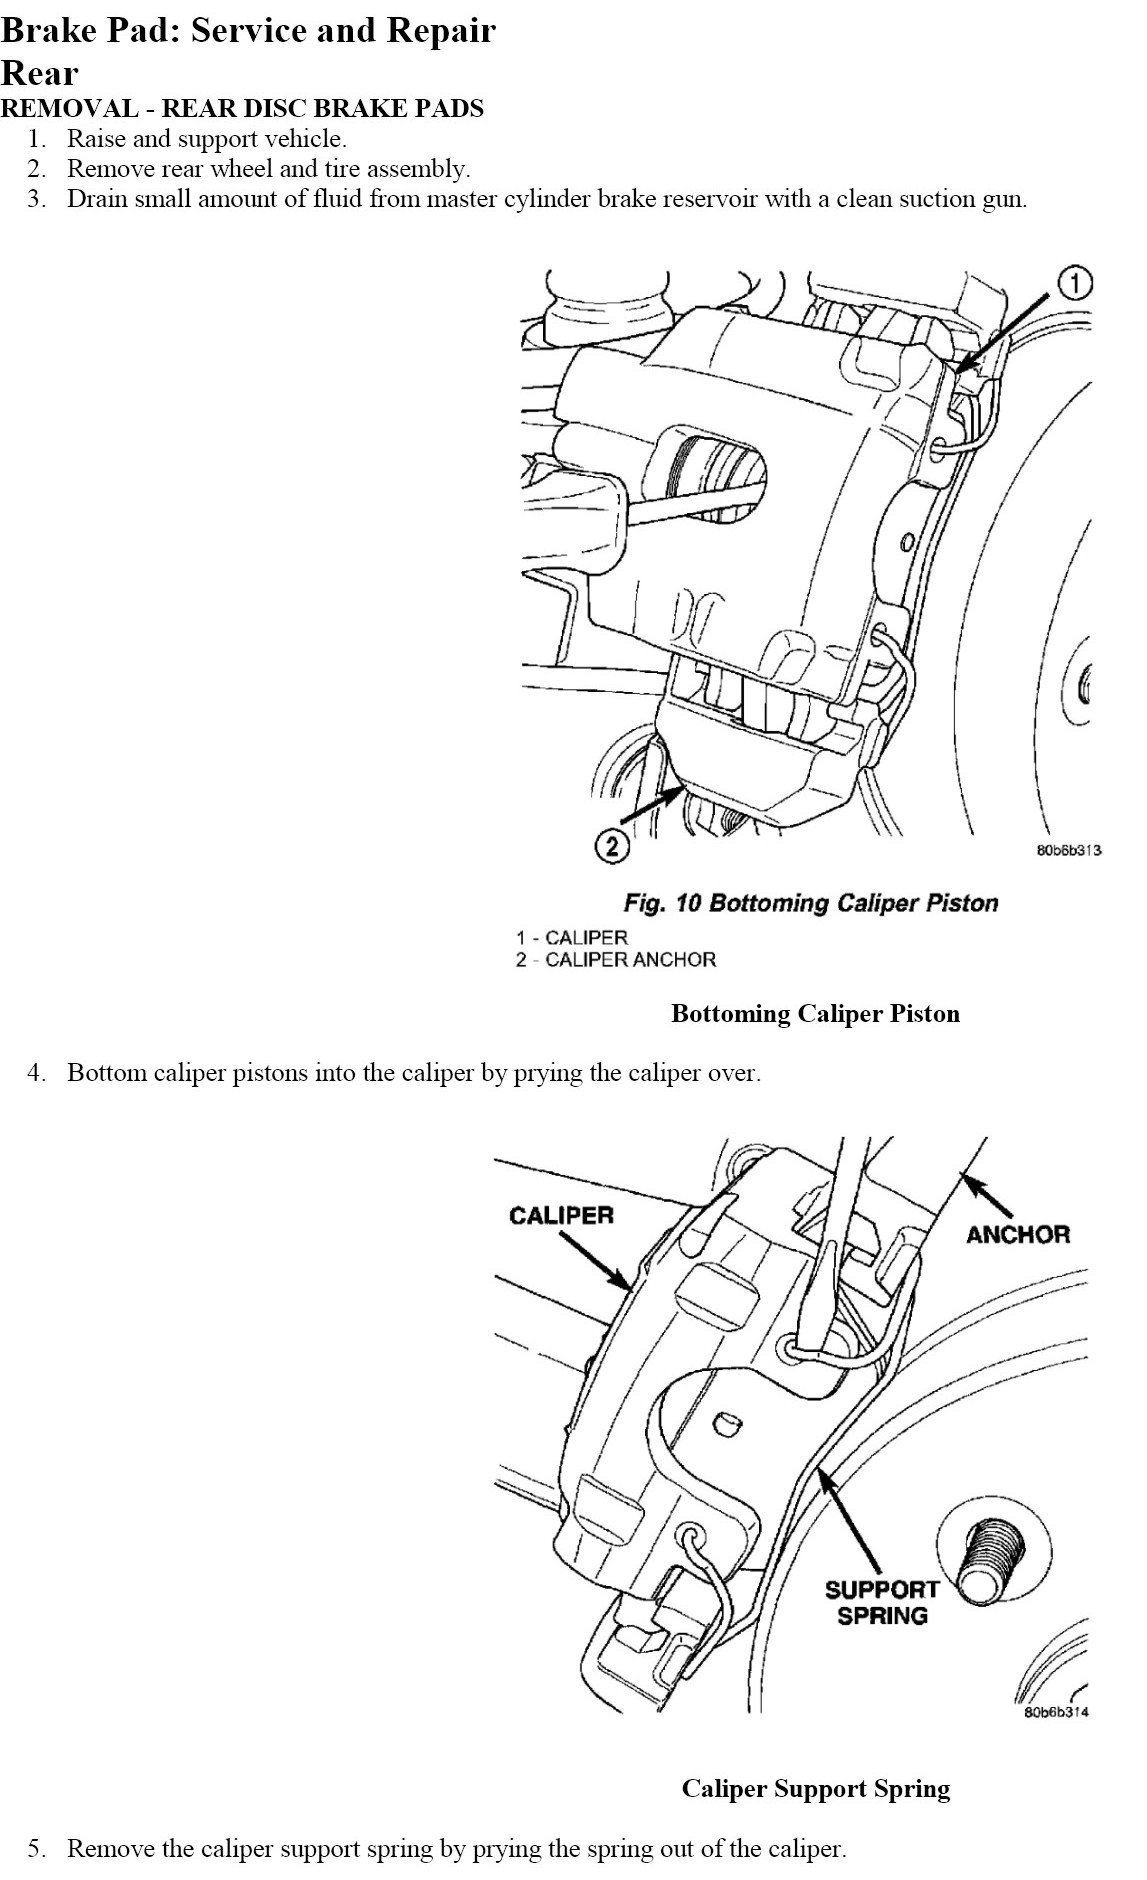 1998 chevy malibu serpentine belt diagram html